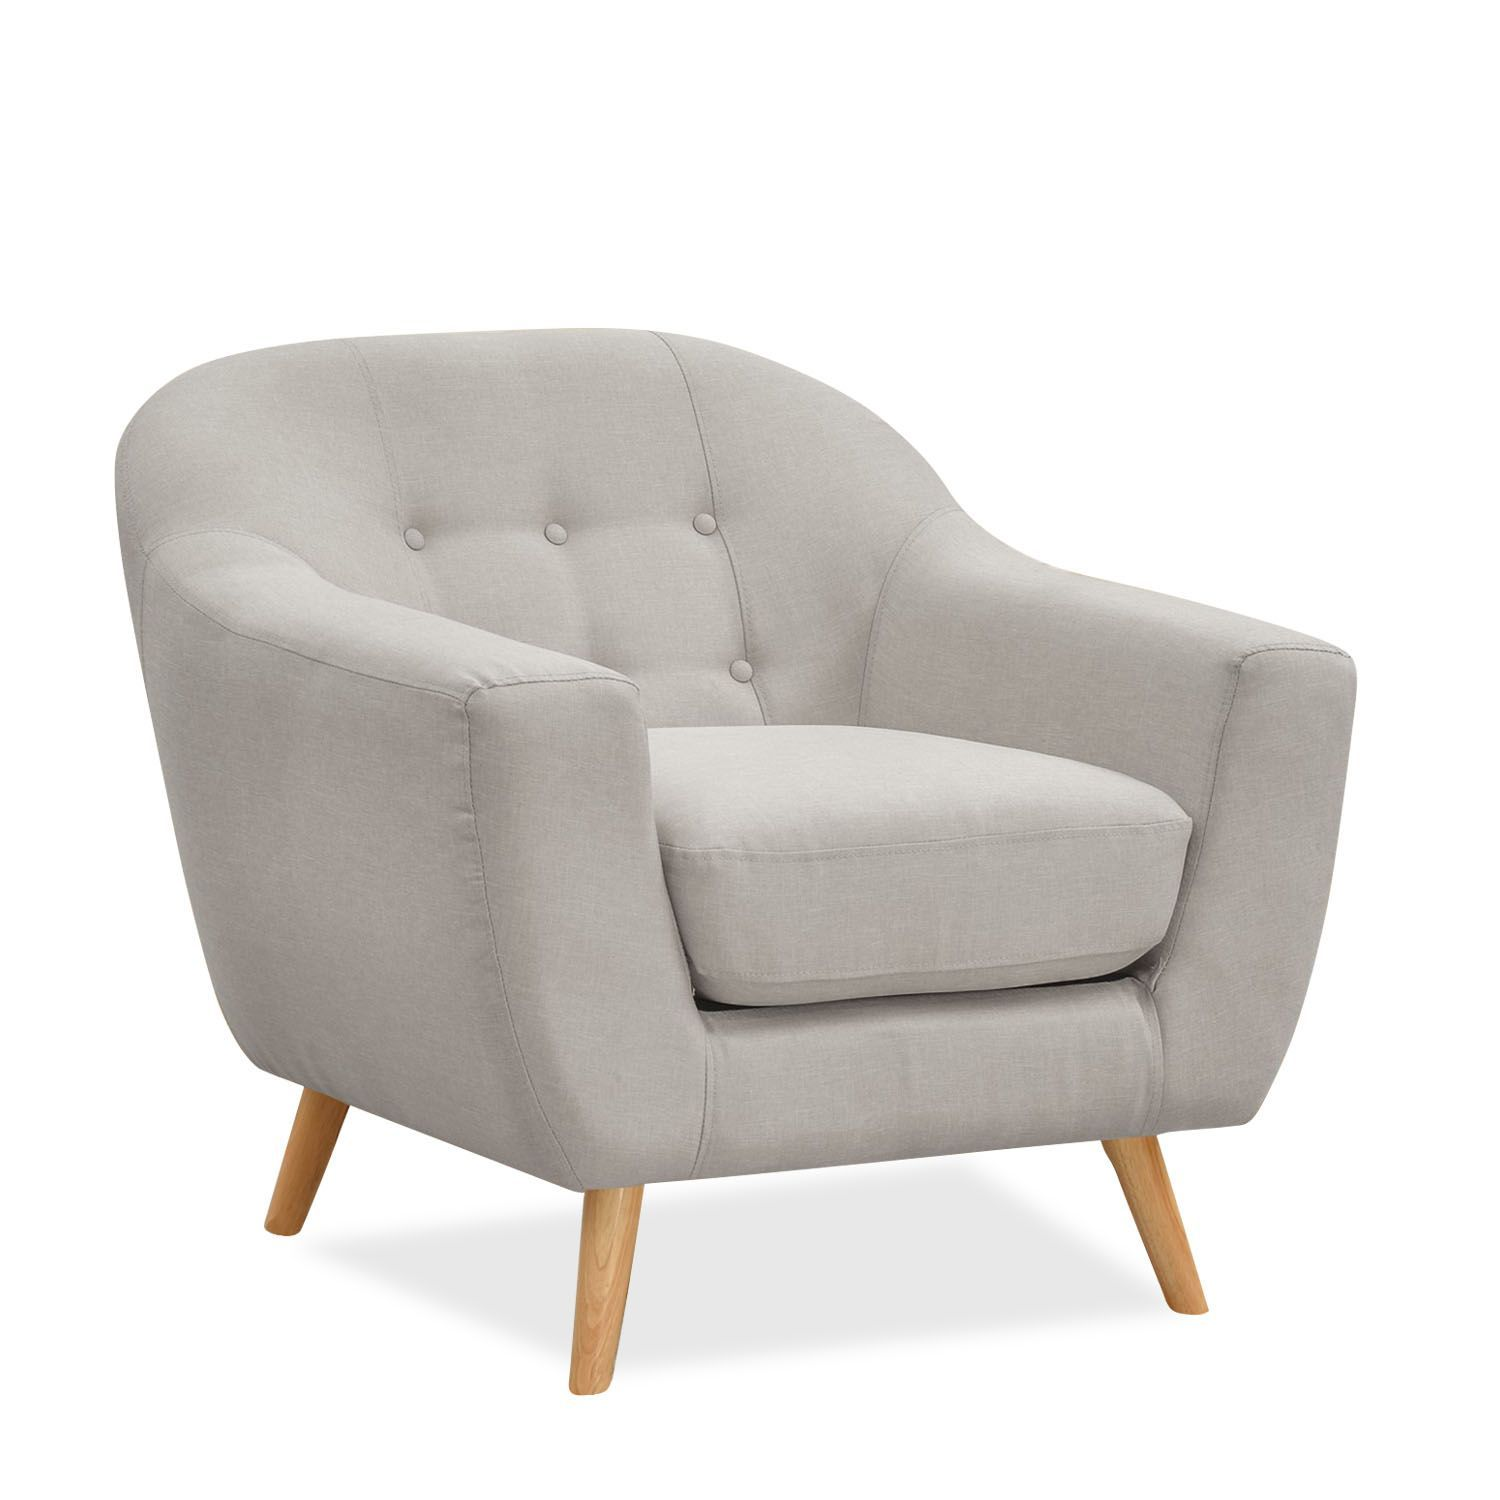 Modern classic armchair - Explore 1 Place Modern Classic And More